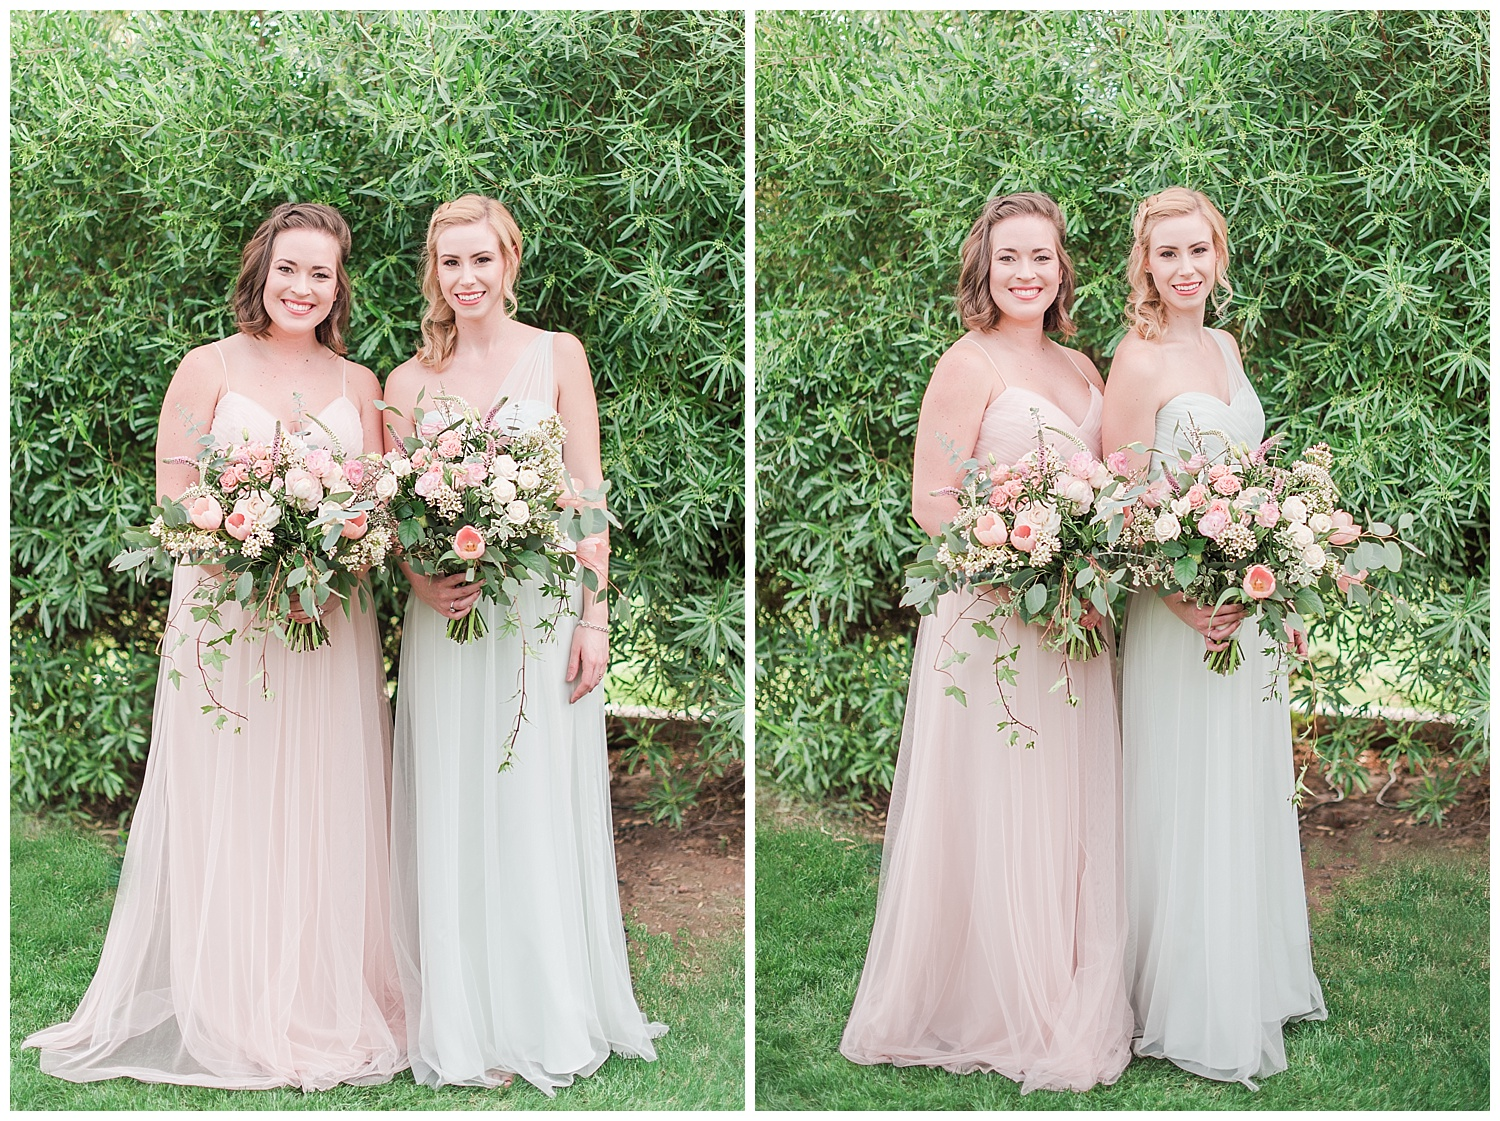 Bridesmaids Savannah and Yvette wearing dresses provided by Bella Bridesmaids in Scottsdale and holding bouquet made with love by Garden Gate Flowers, photographed at Gather Estate in Mesa, Arizona.